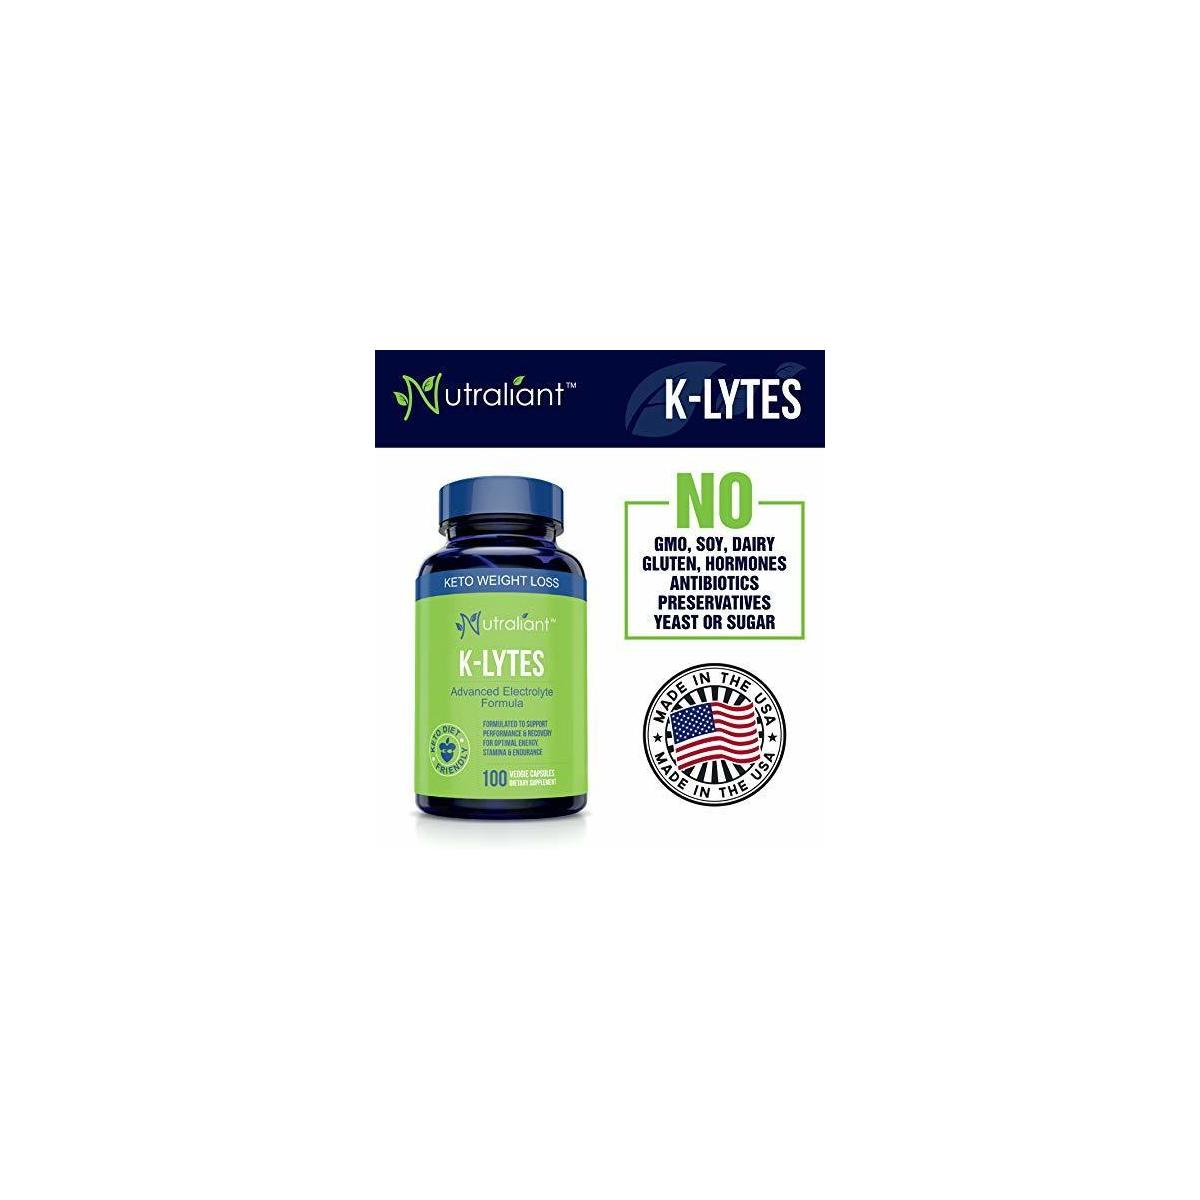 K-LYTES Electrolyte Supplement Rapid Rehydration - Vitamin D, Minerals & BioPerine Pepper For Best Electrolytes Absorption - Stops Cramps, Boosts Energy, Endurance & Recovery - Perfect Keto Diet Pills